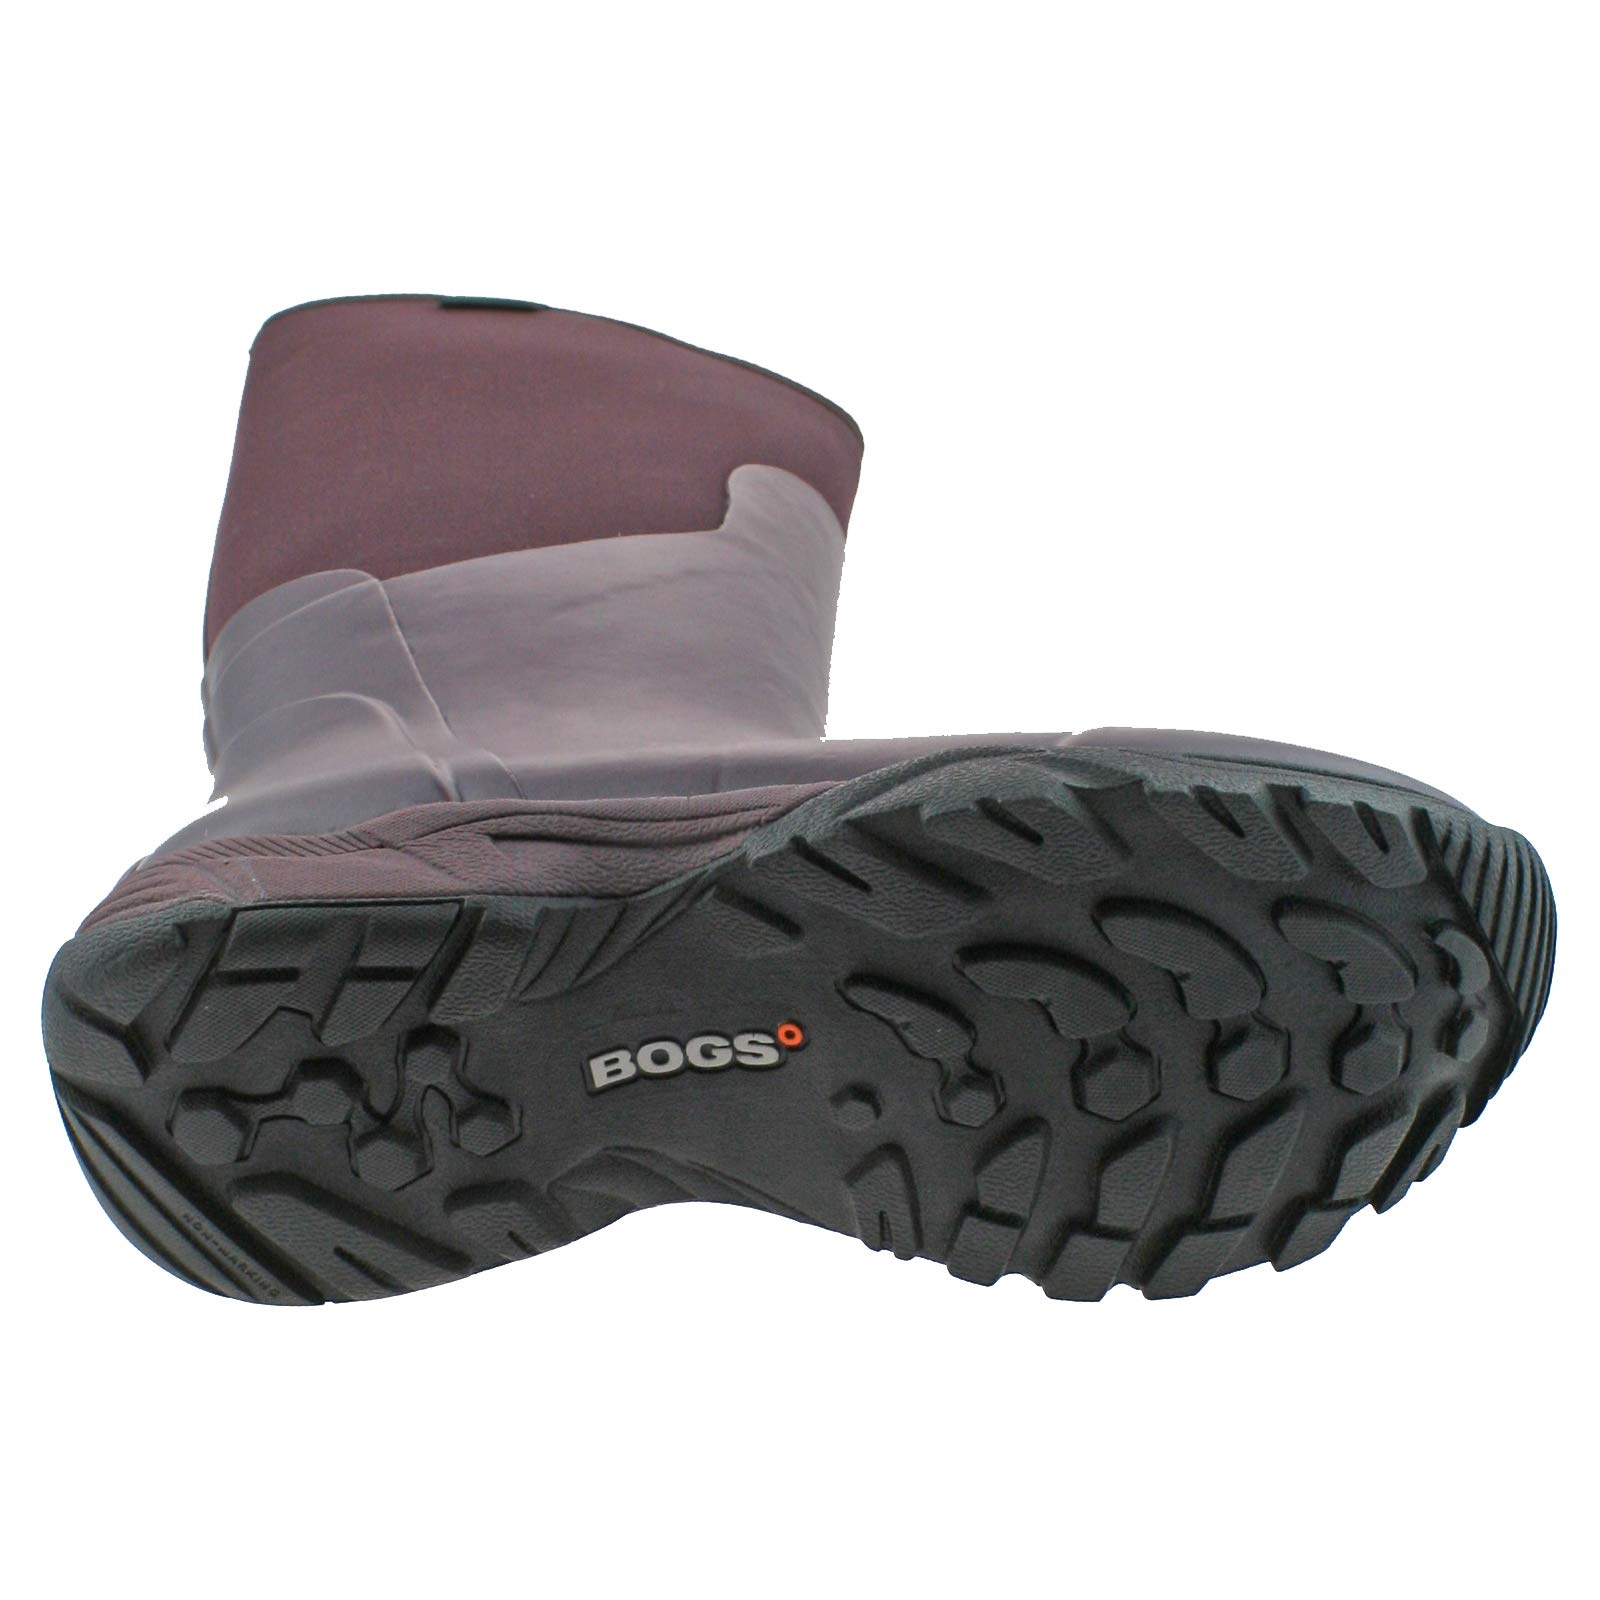 Ladies Essential Aubergine Solid Tall 550 Wellies 38 5 78583 Boot Warm Insulated Bogs eu uk RIdqw5R